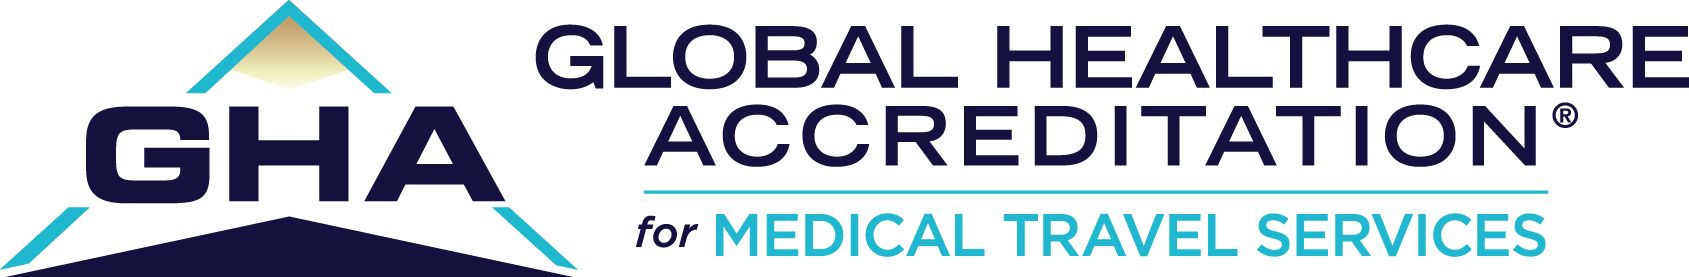 Global Healthcare Accreditation GHA Logo